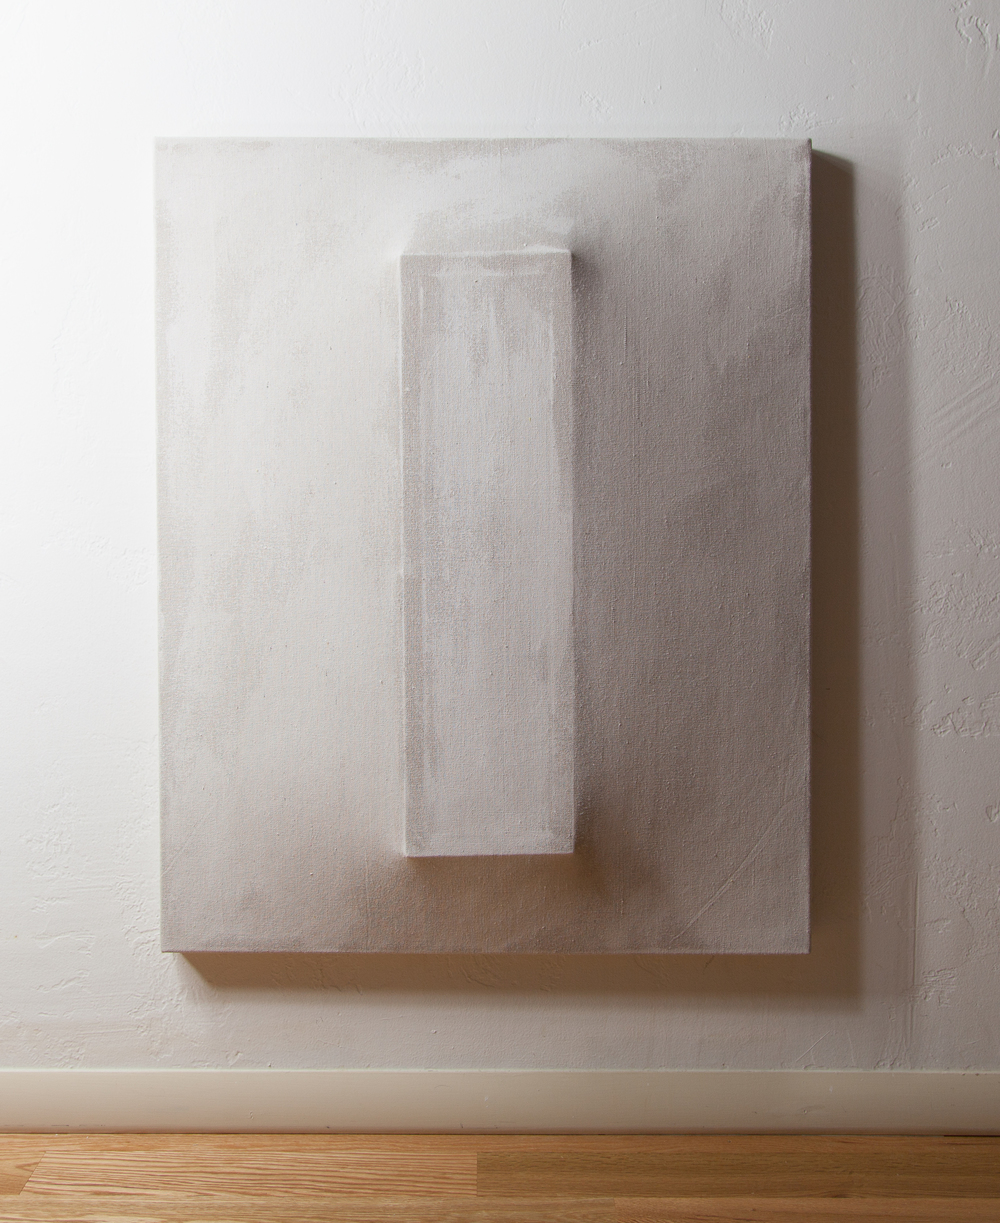 There's a Block in the Void (1242),  gesso on shaped canvas, 30 x 24, Installation, *